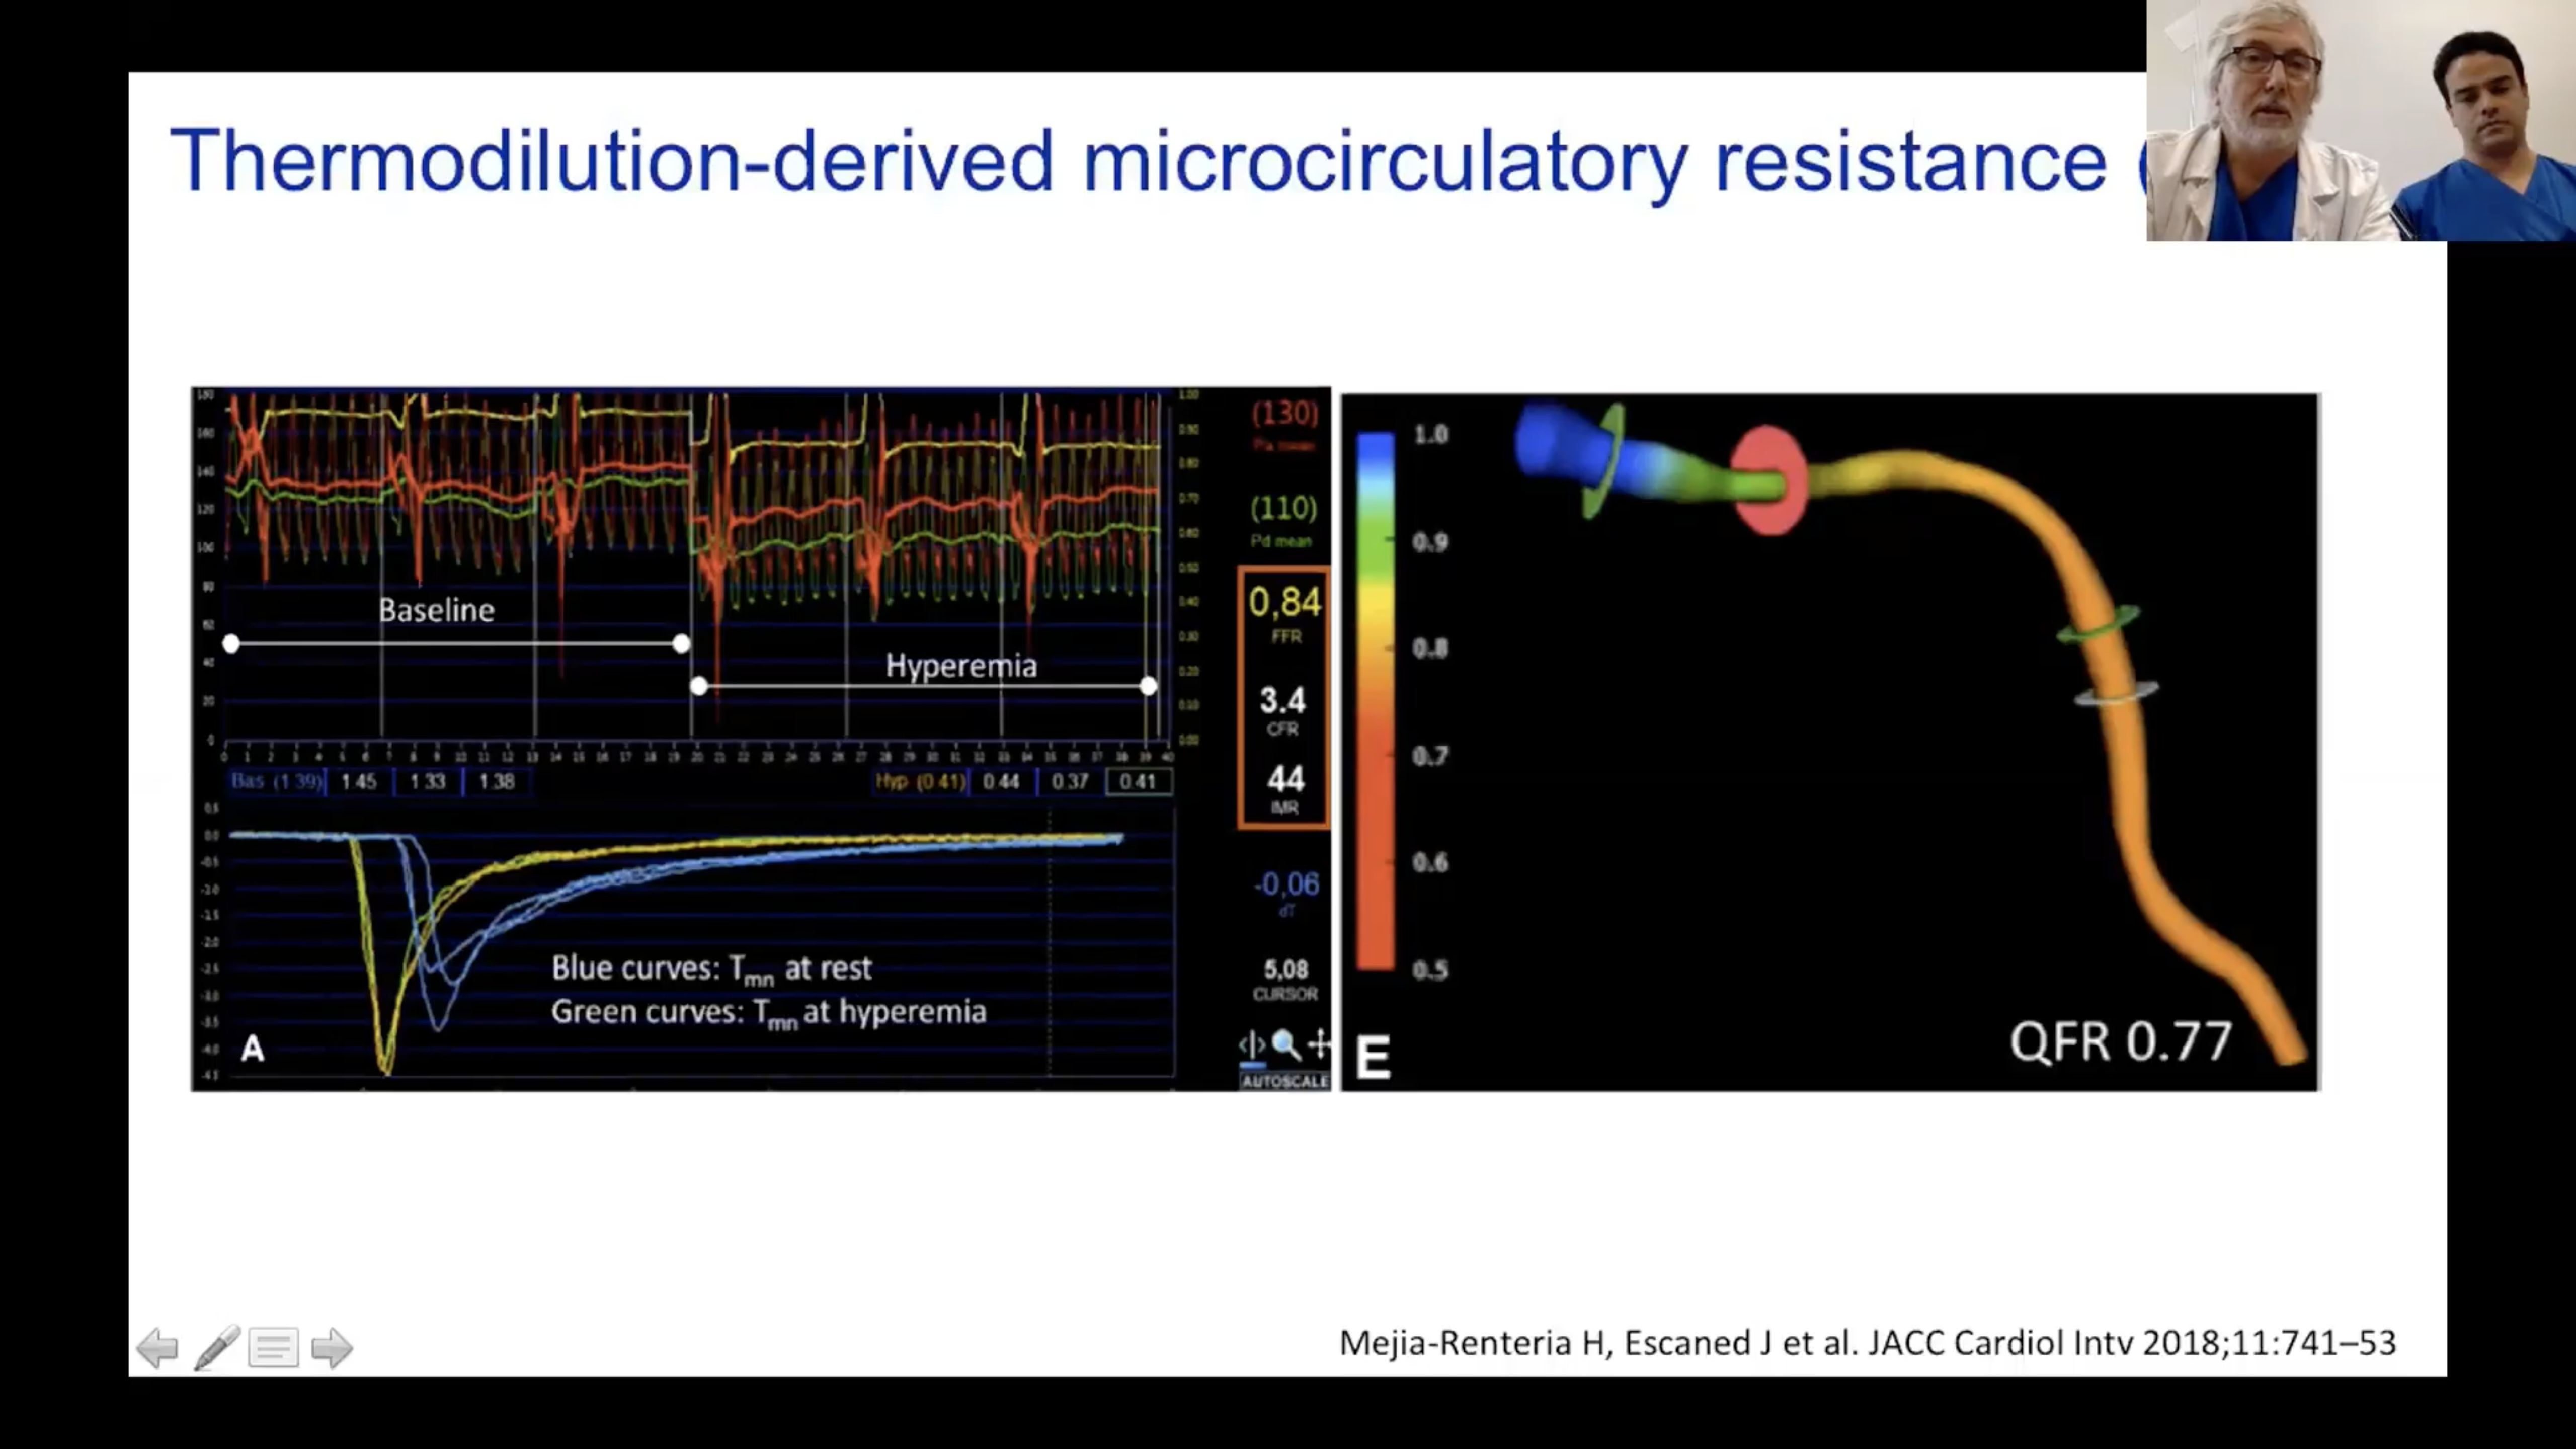 Thermodilution-derived microcirculatory resistance